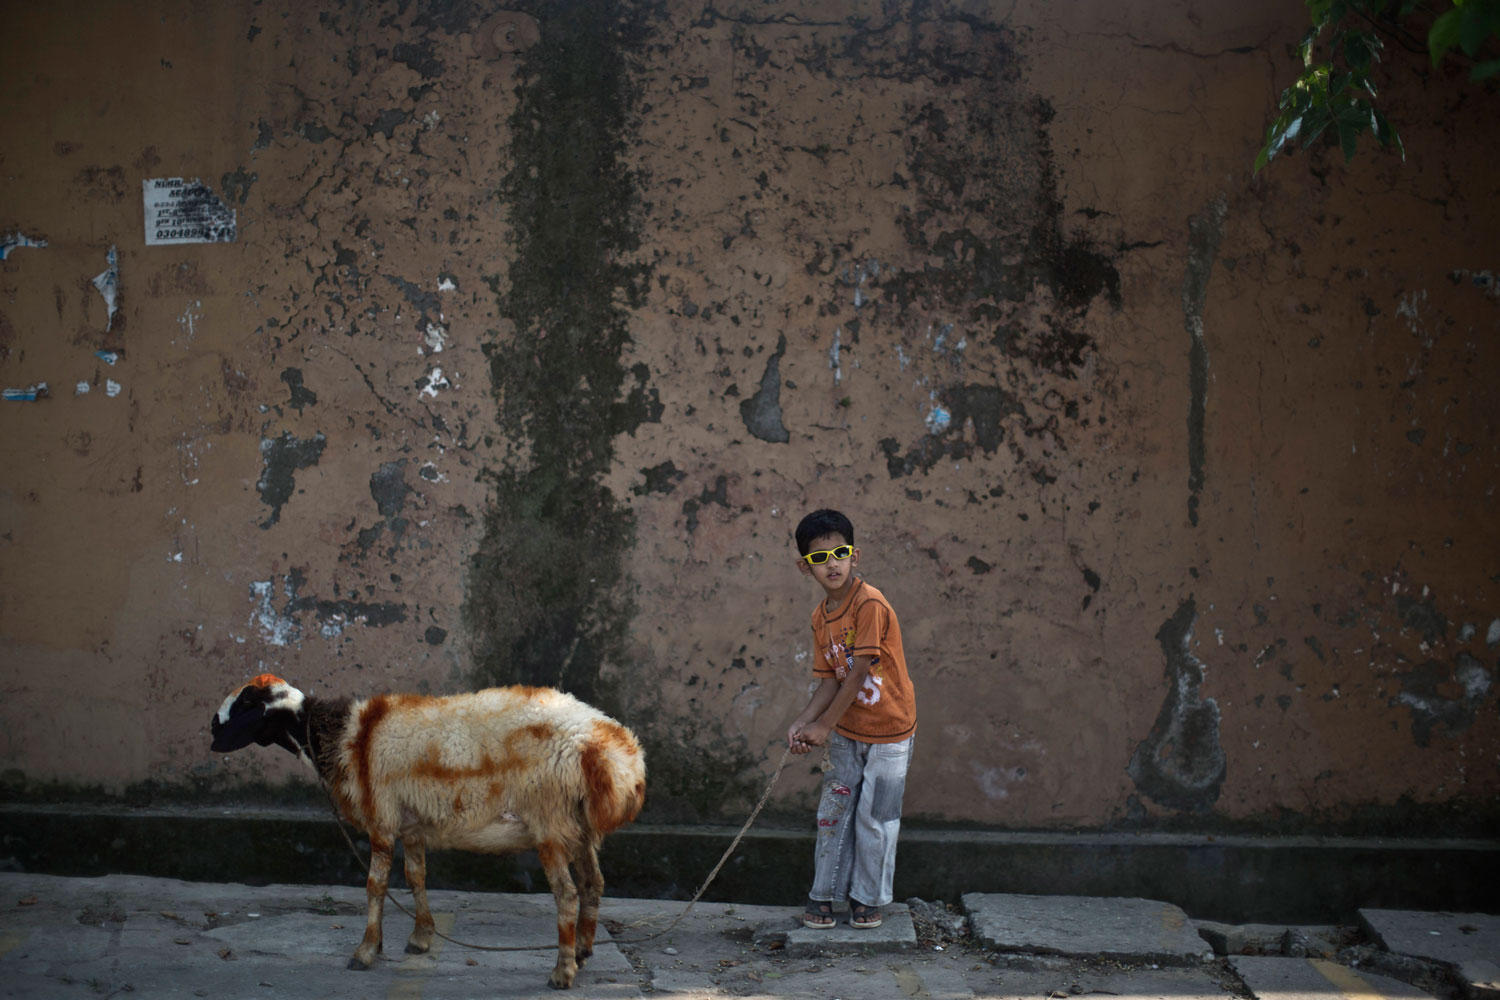 Oct. 11, 2013. Saad Imran, 6, walks his painted sheep home in Islamabad, Pakistan. The sheep will be slaughtered on the upcoming Muslim holiday of Eid al-Adha, or  Feast of Sacrifice.  Writing on the sheep read,  Eid,  or  Feast,  referring to the holiday.